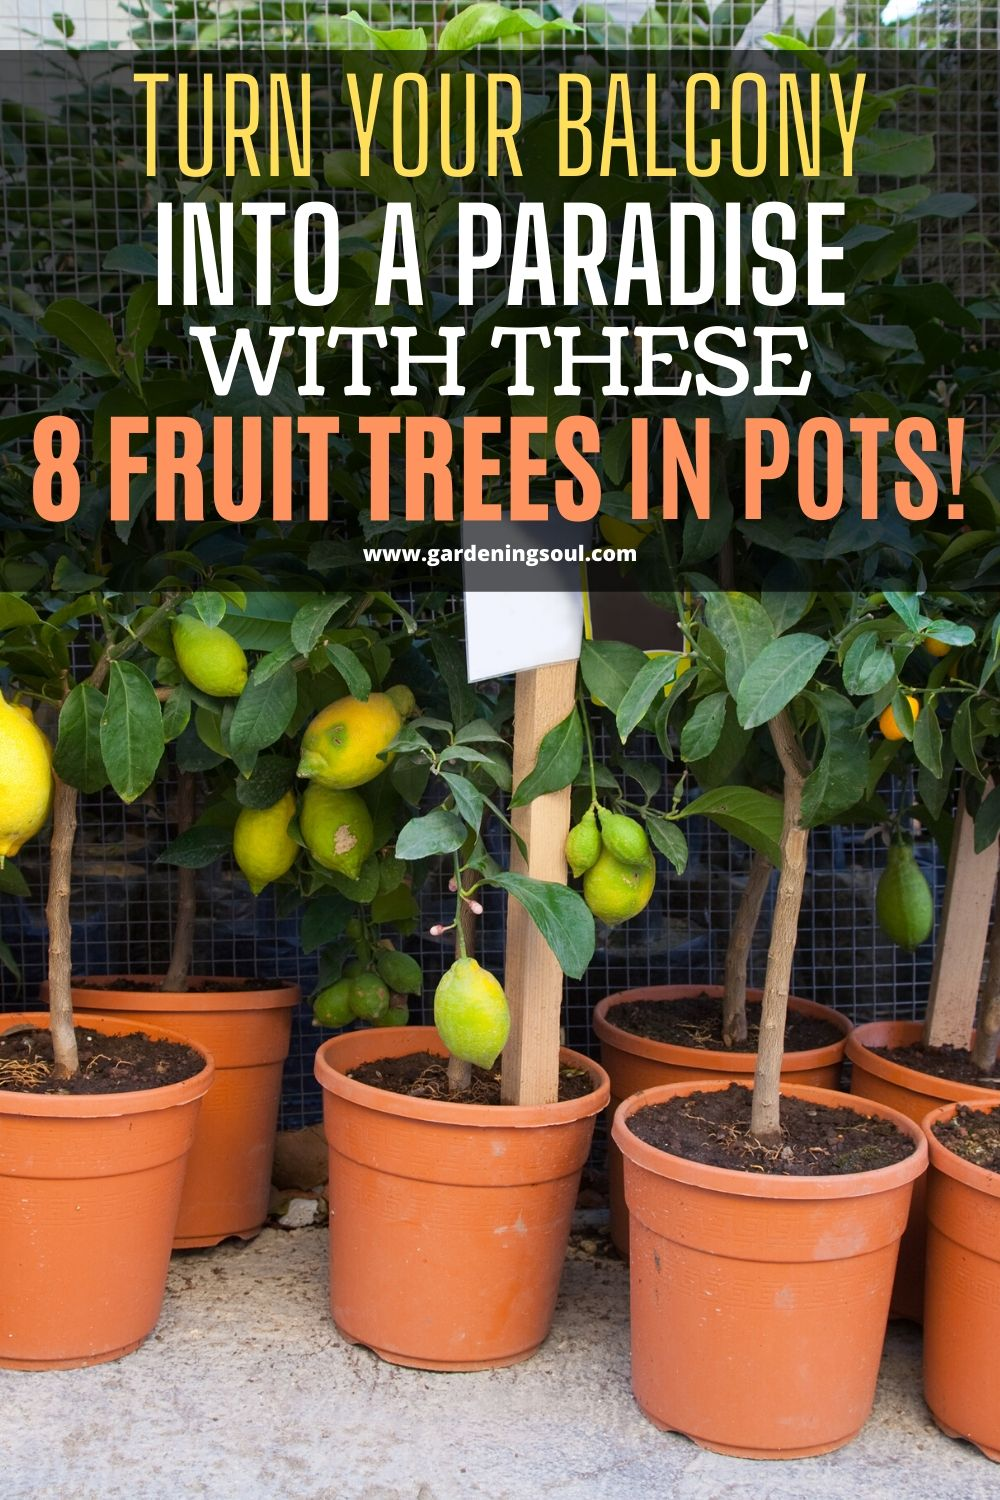 Turn Your Balcony Into A Paradise With These 8 Fruit Trees In Pots Fruit Trees Potted Trees Container Gardening